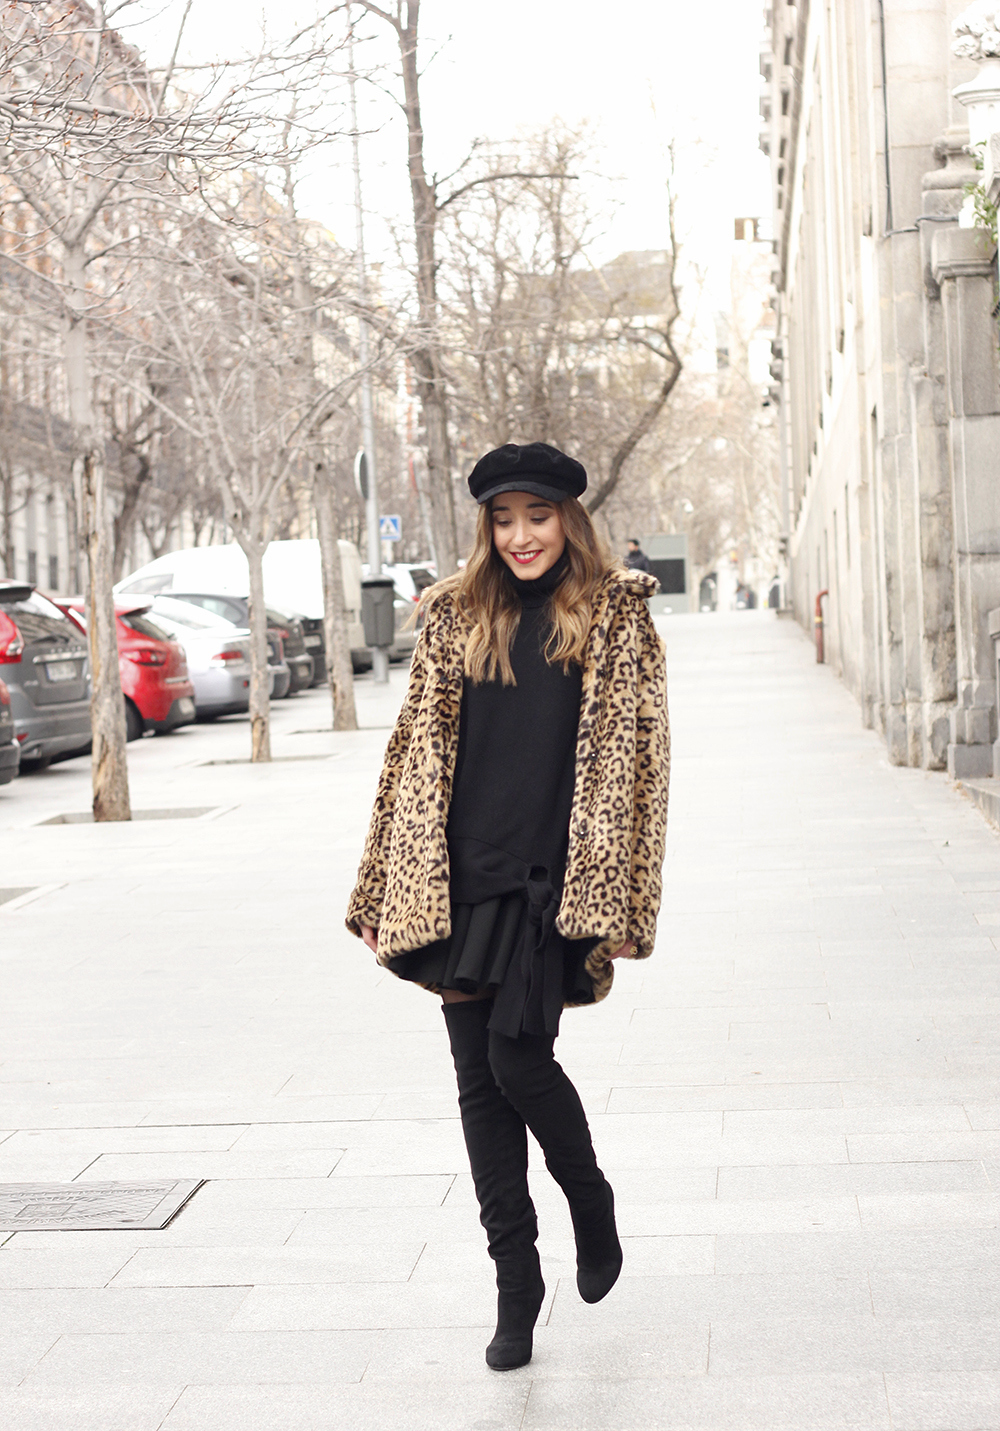 leopard coat black outfit over the knee boats givenchy black cap winter outfit02